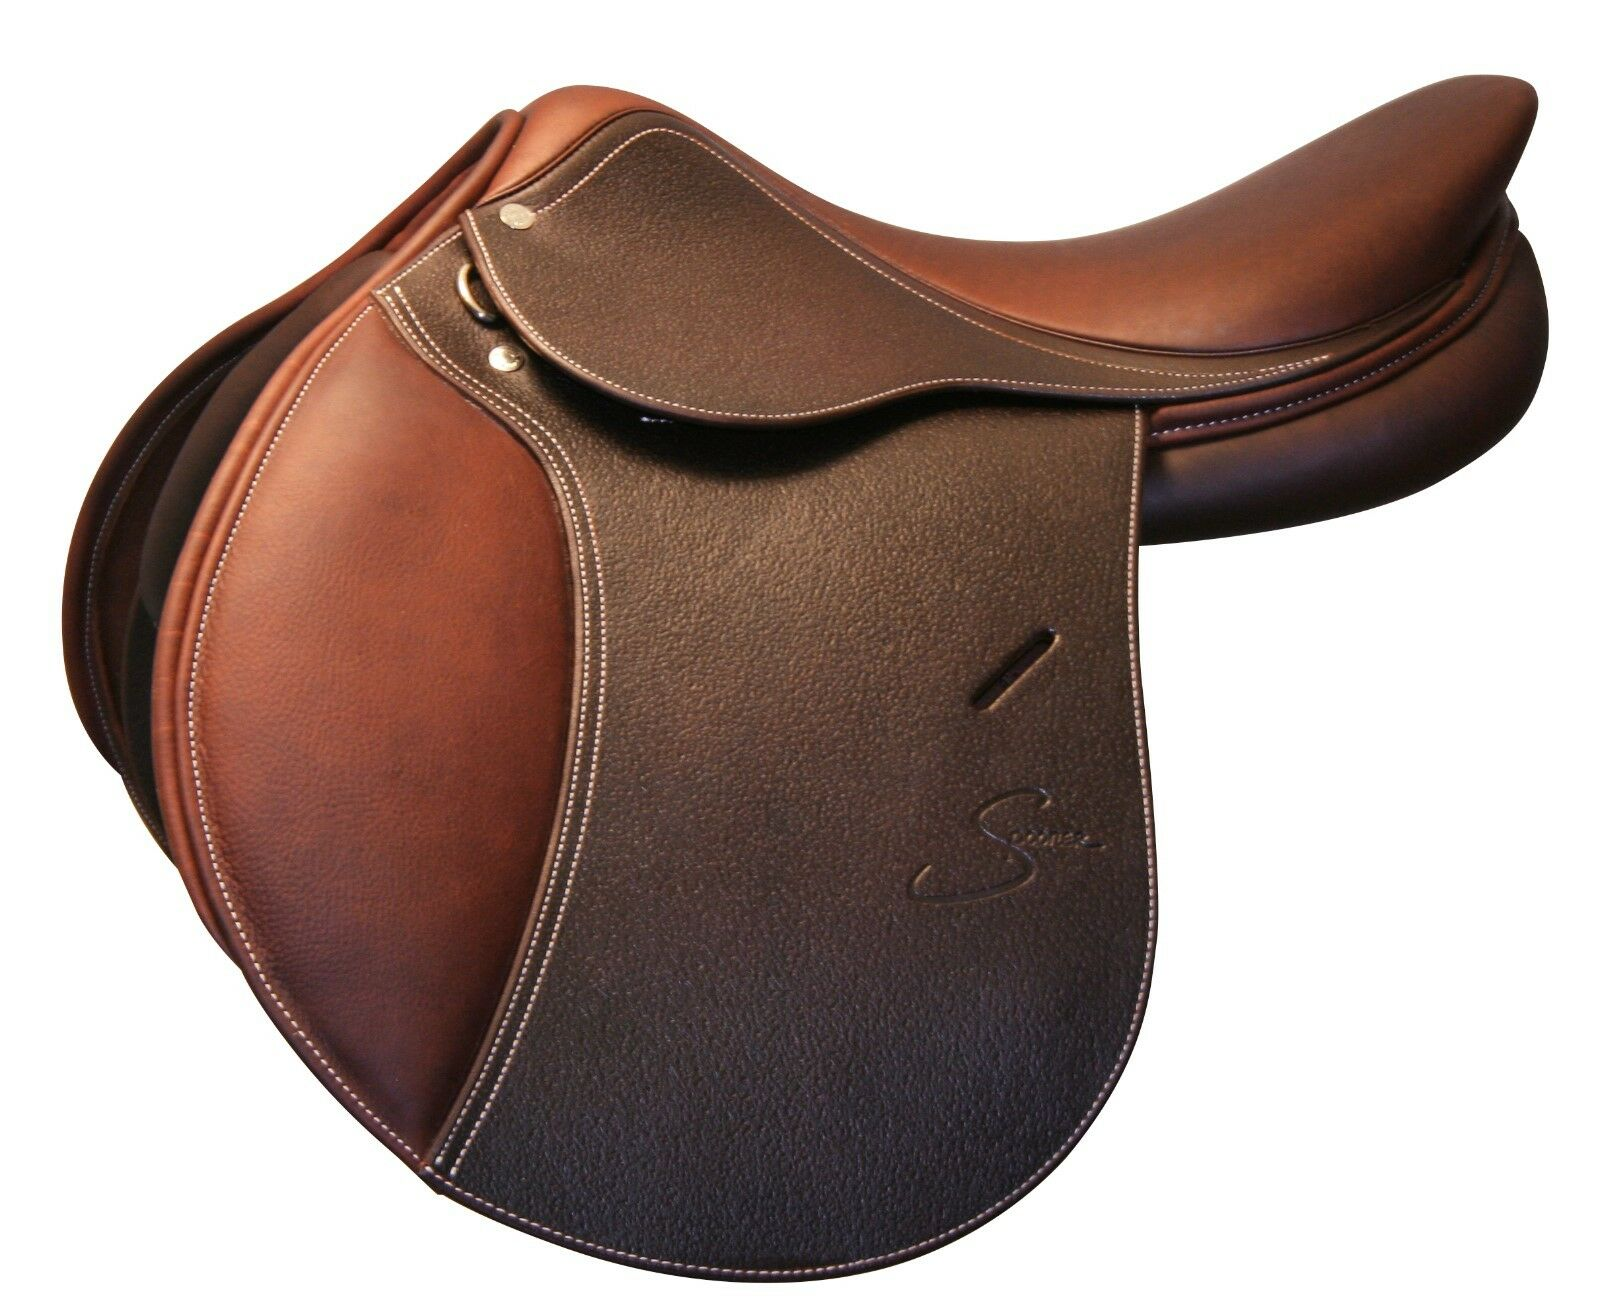 ANTARES CLOSE CONTACT SPOONER  SADDLE 17.5 3N Reg  NWT  we offer various famous brand